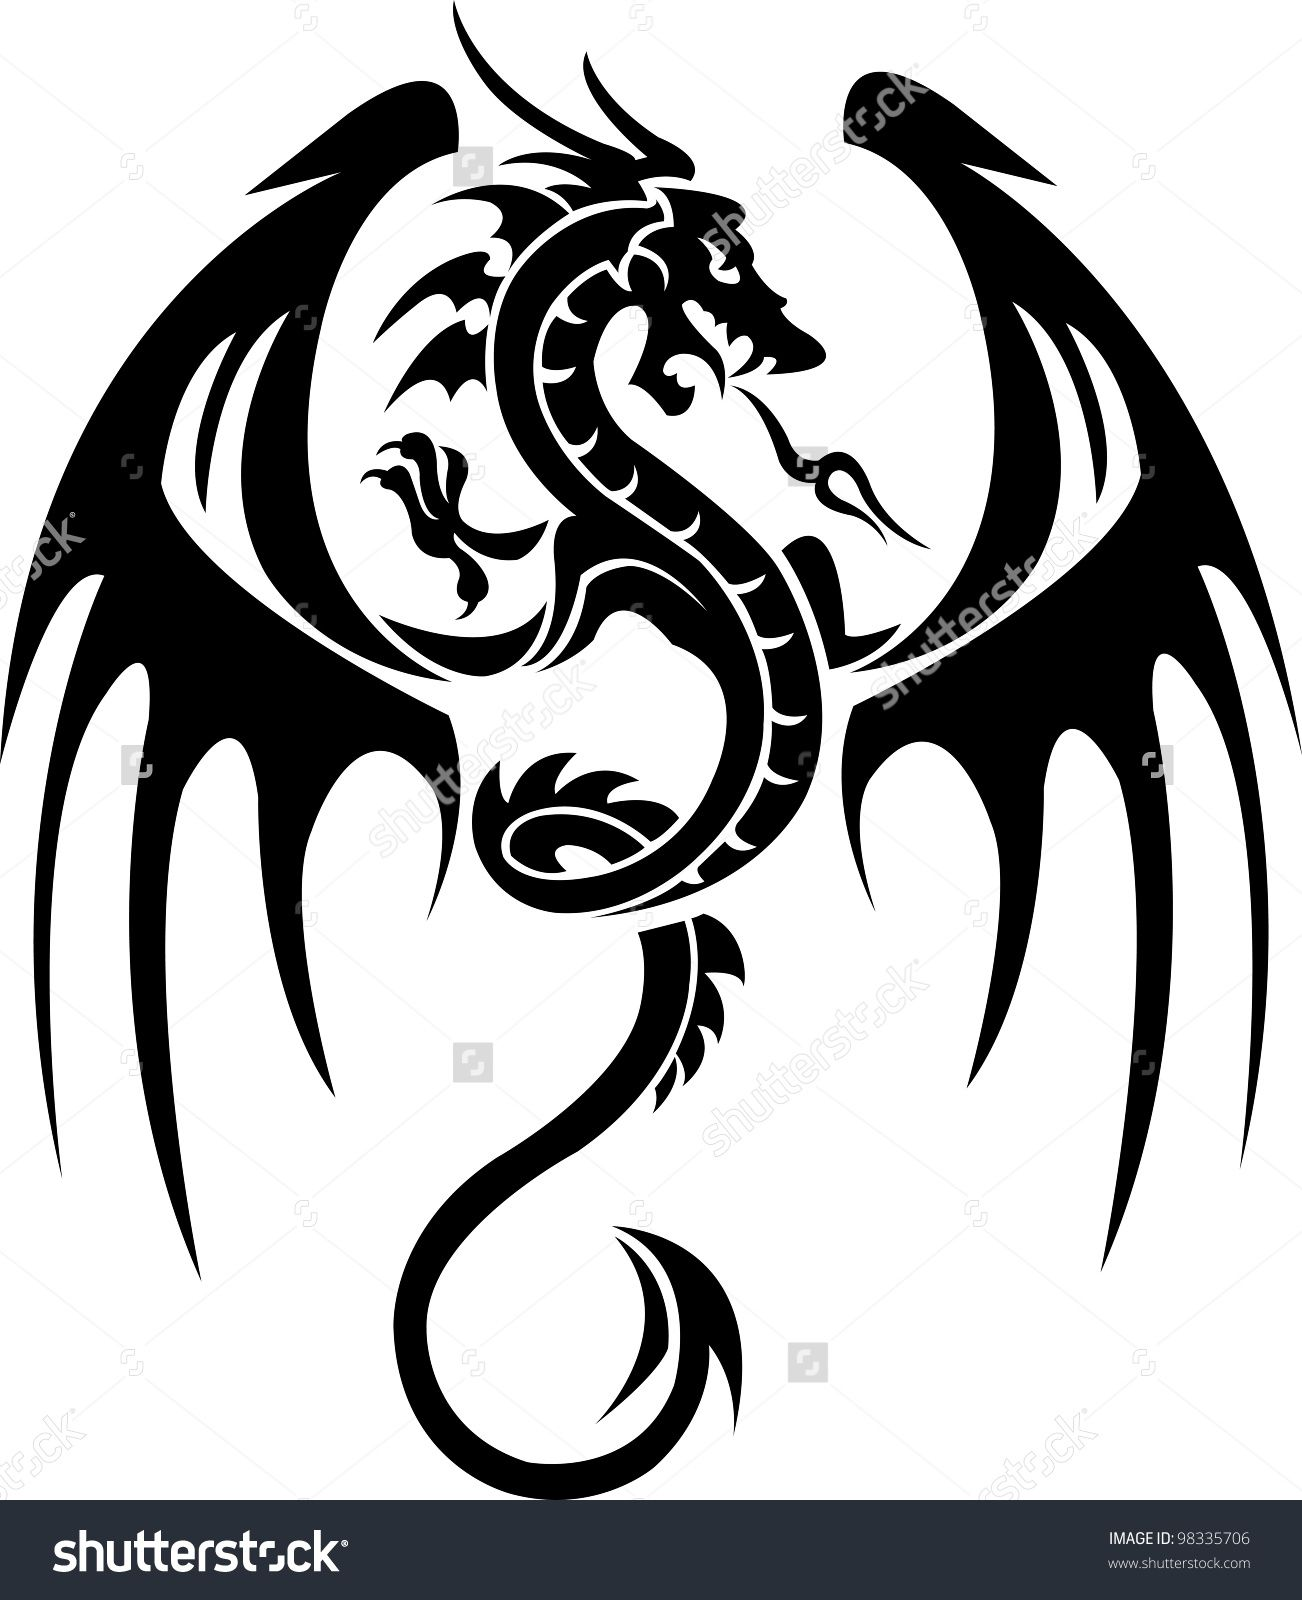 d6b60f88b609a Dragons Stock Photos, Images, & Pictures | Shutterstock | Crafting ...